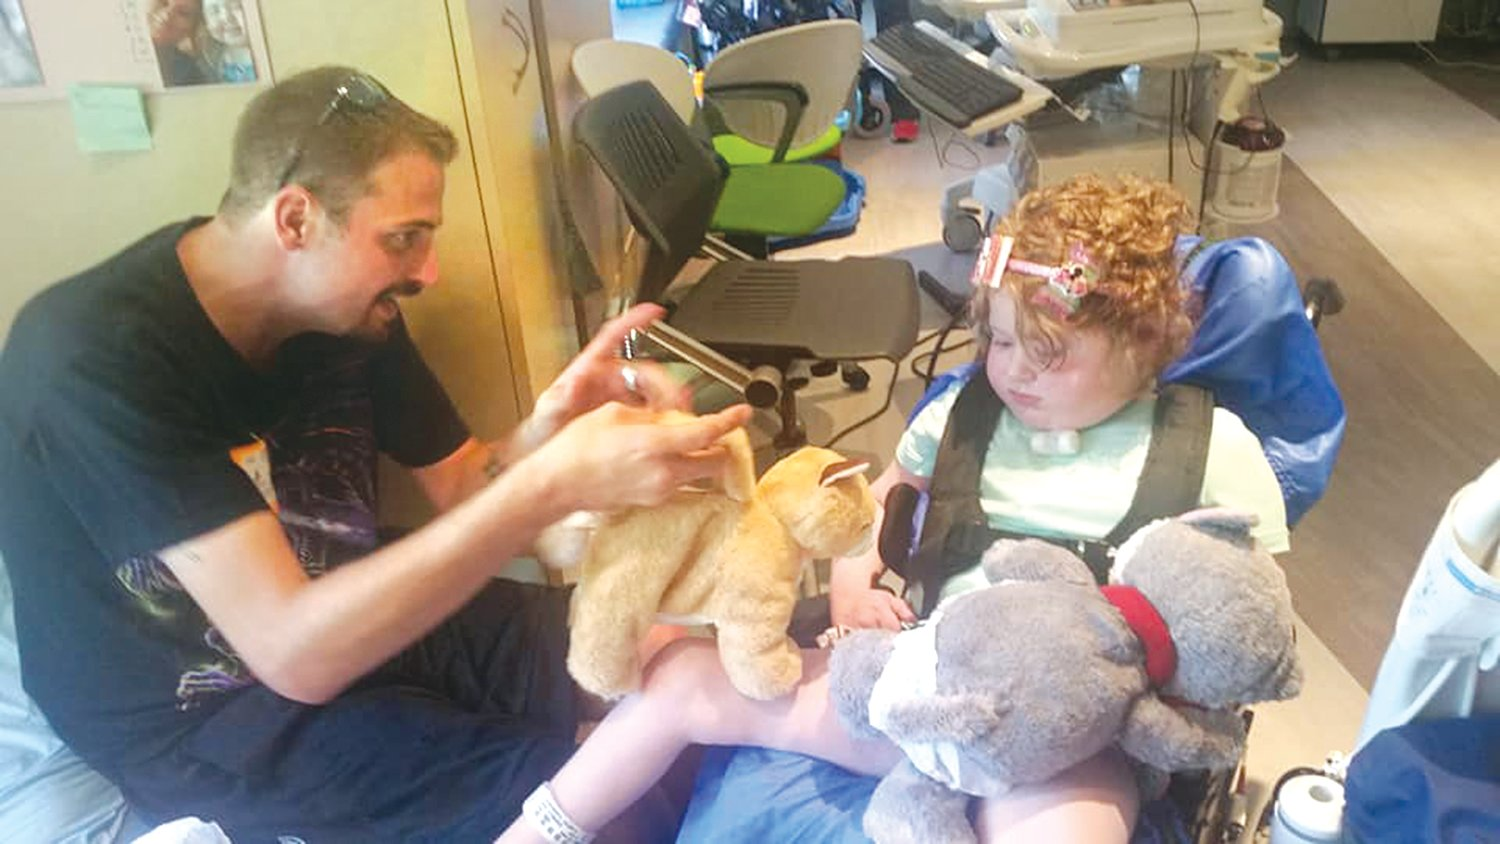 Seven-year-old Lilly Hackworth of Morrisonville is pictured above with her father, Guy Hackworth, as they play with stuffed animals at Ranken Jordan Pediatric Bridge Hospital in Maryland Heights, MO, where Lilly has been receiving care this year.